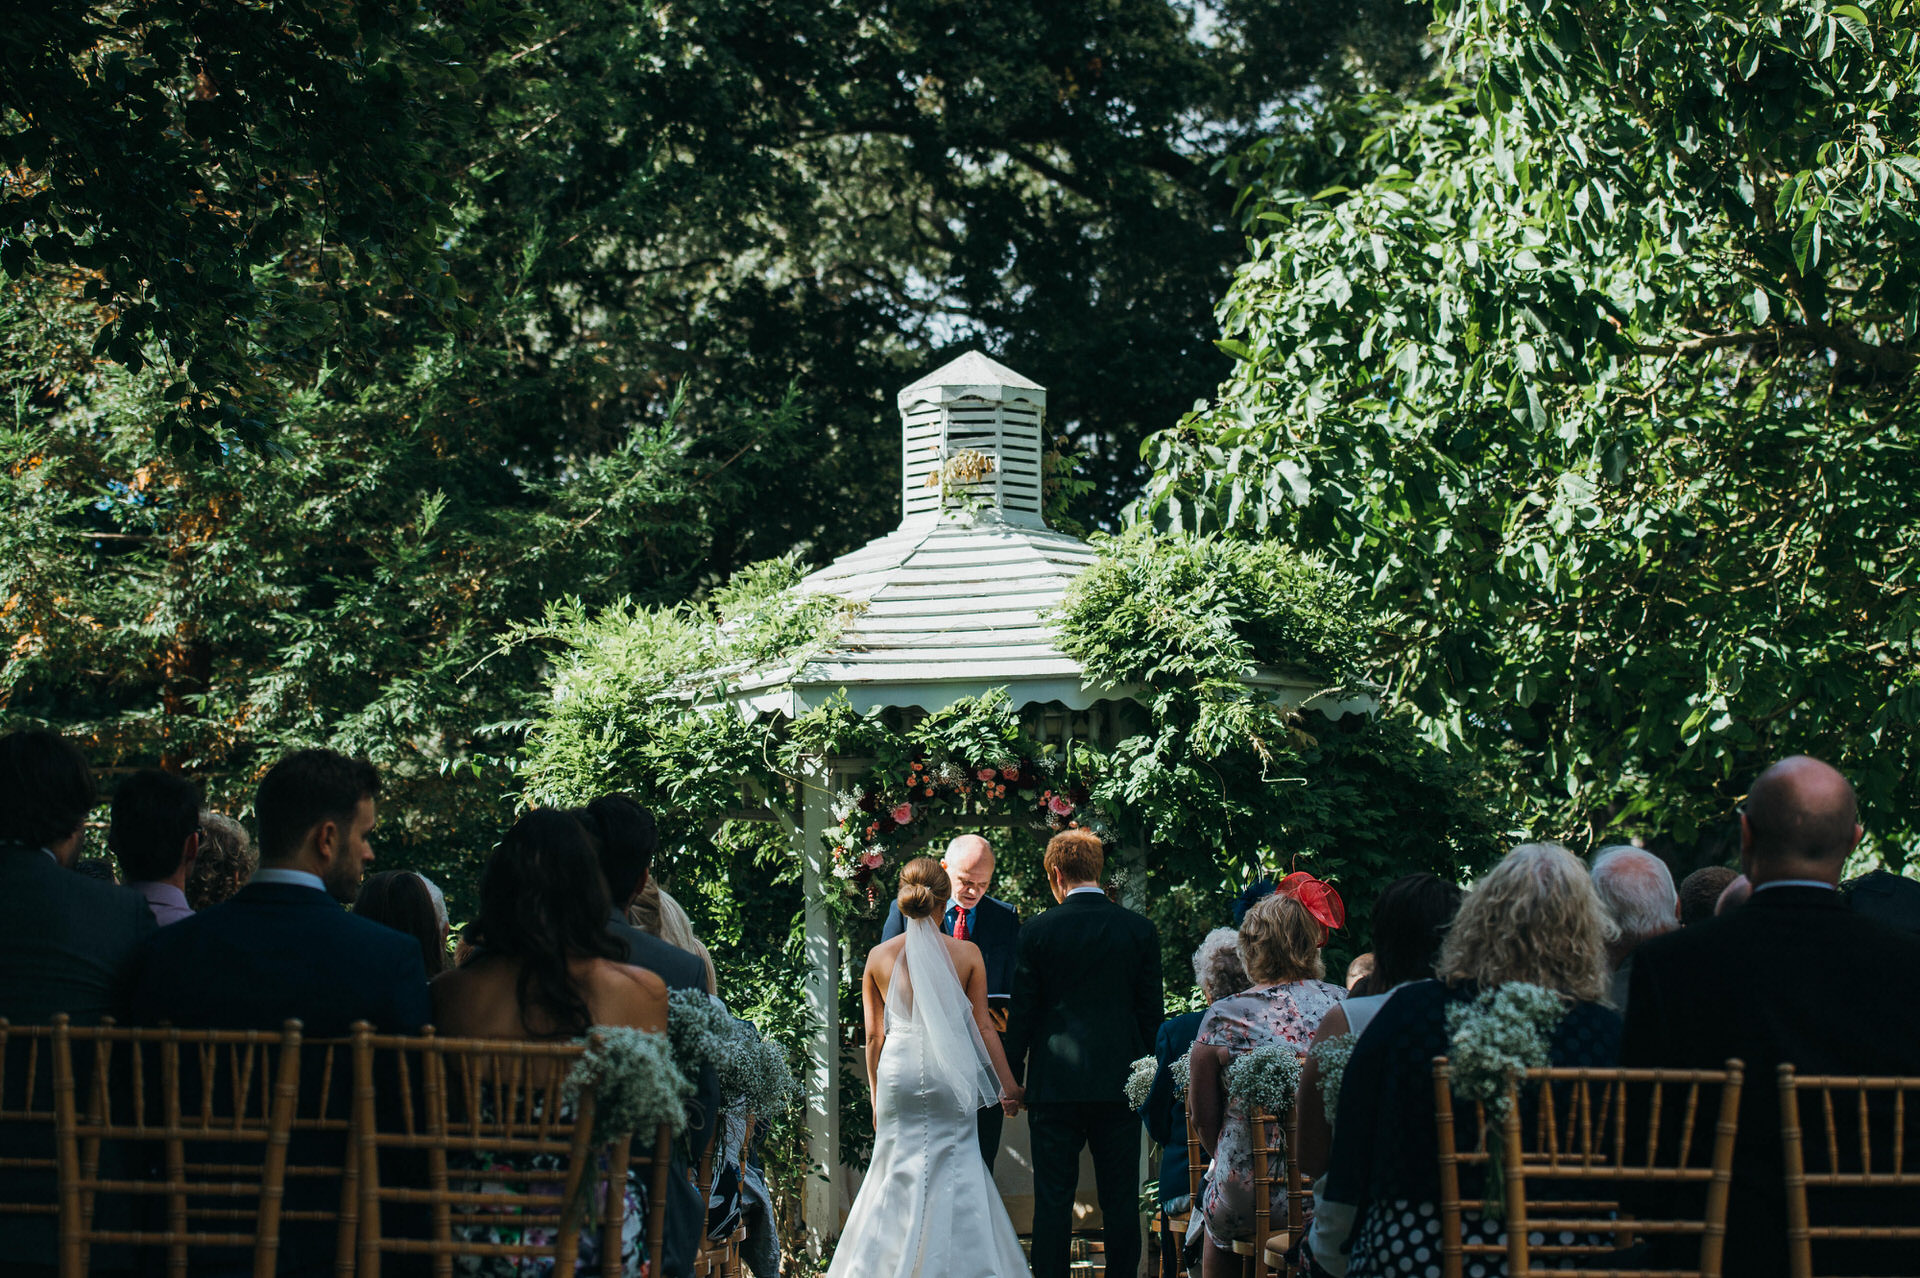 Maunsel house wedding photography 23 outdoor ceremony